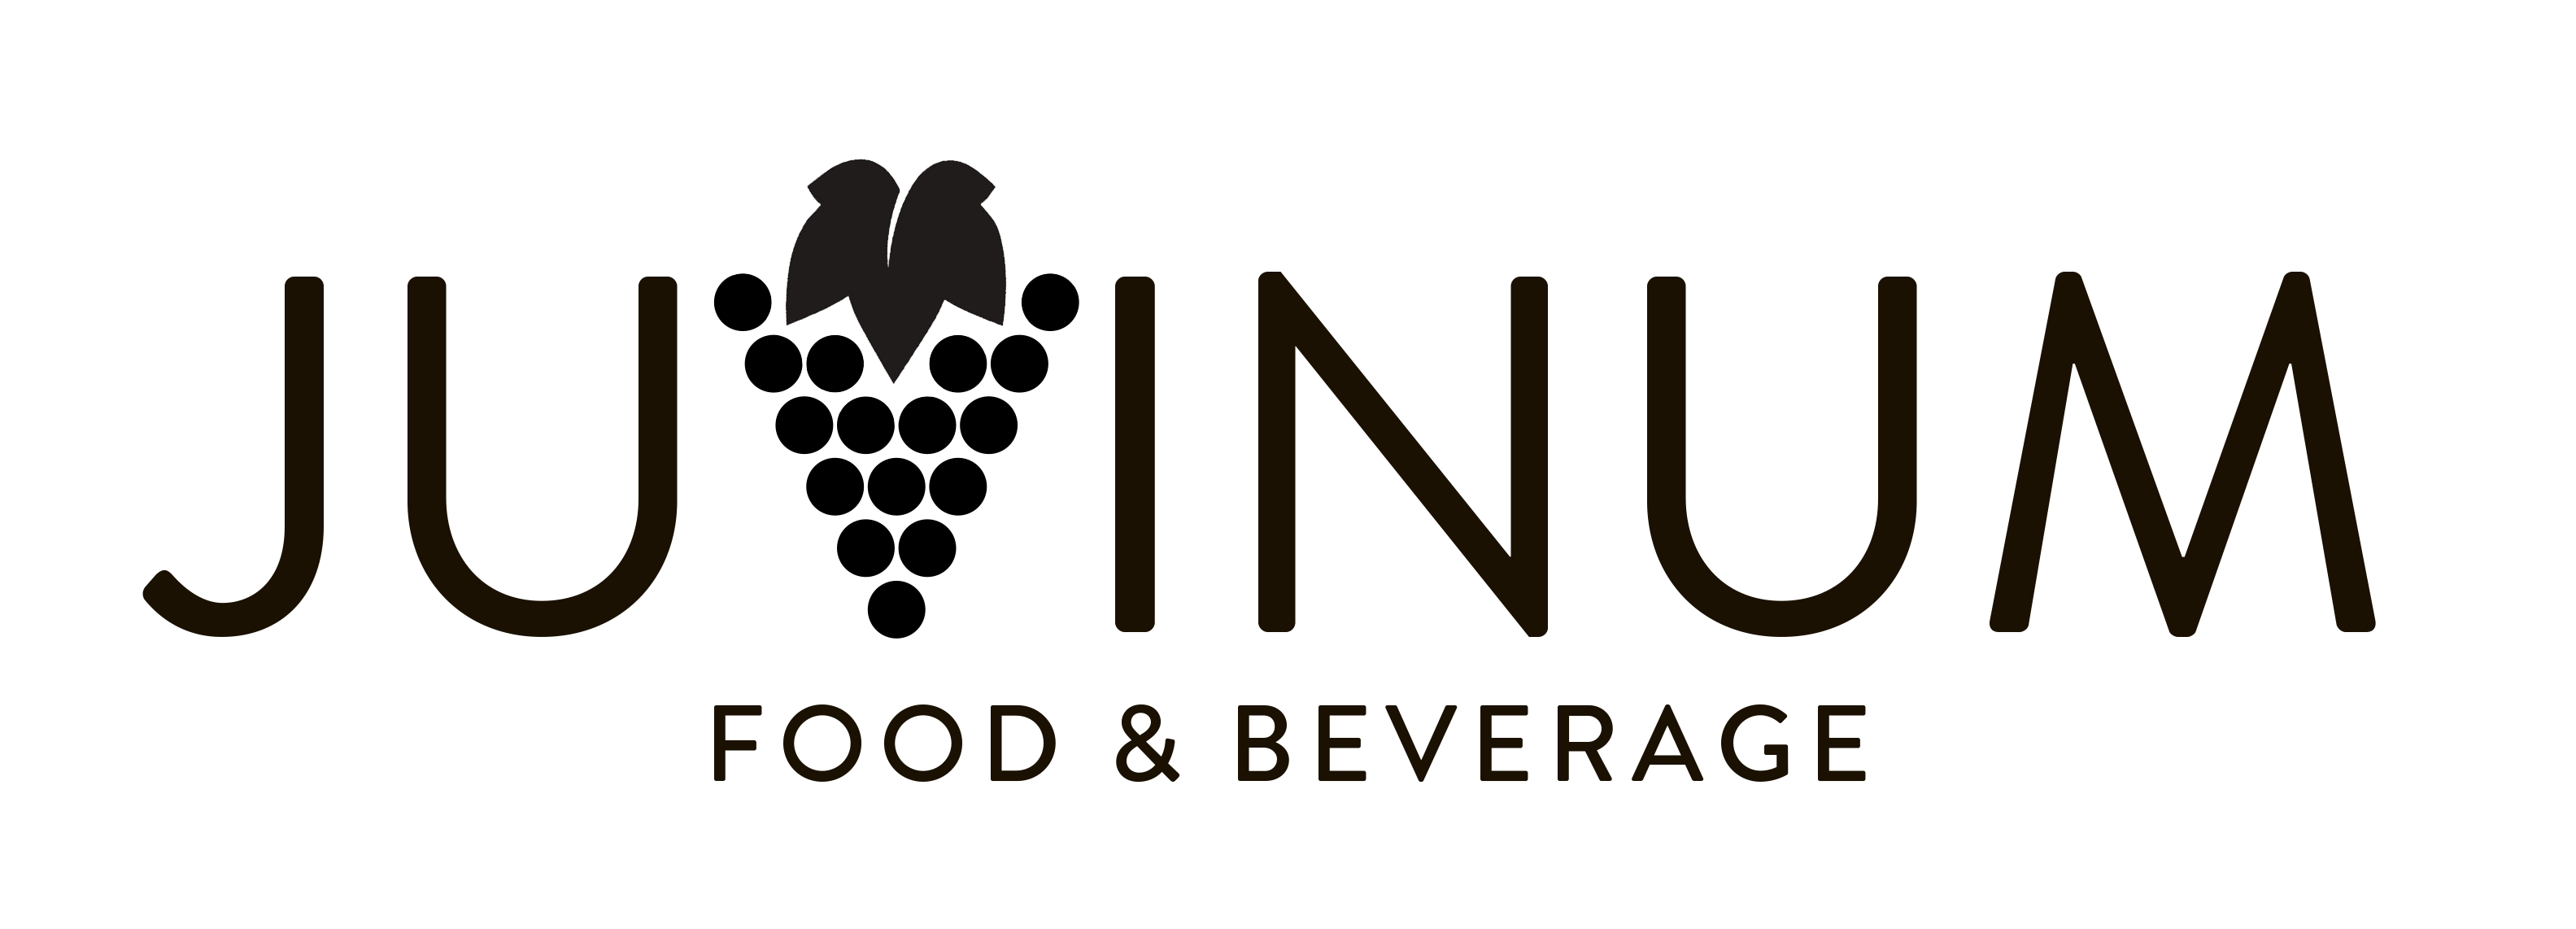 Juvinum Food & Beverage AB